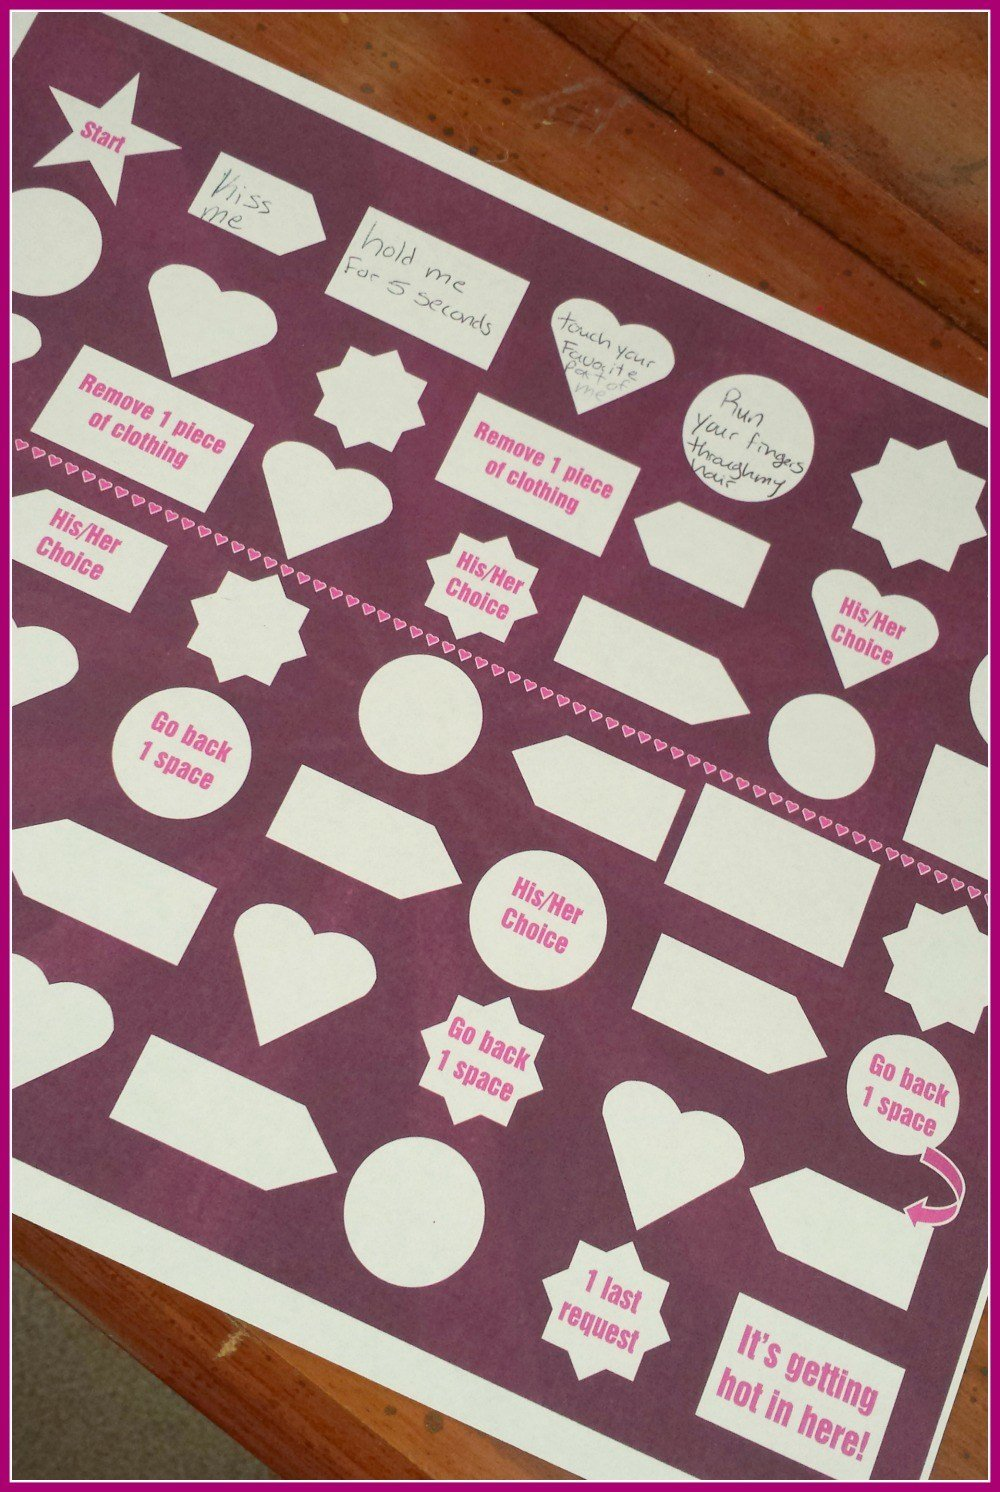 Best Diy Couples Bedroom Game With Printables Love Hope With Pictures